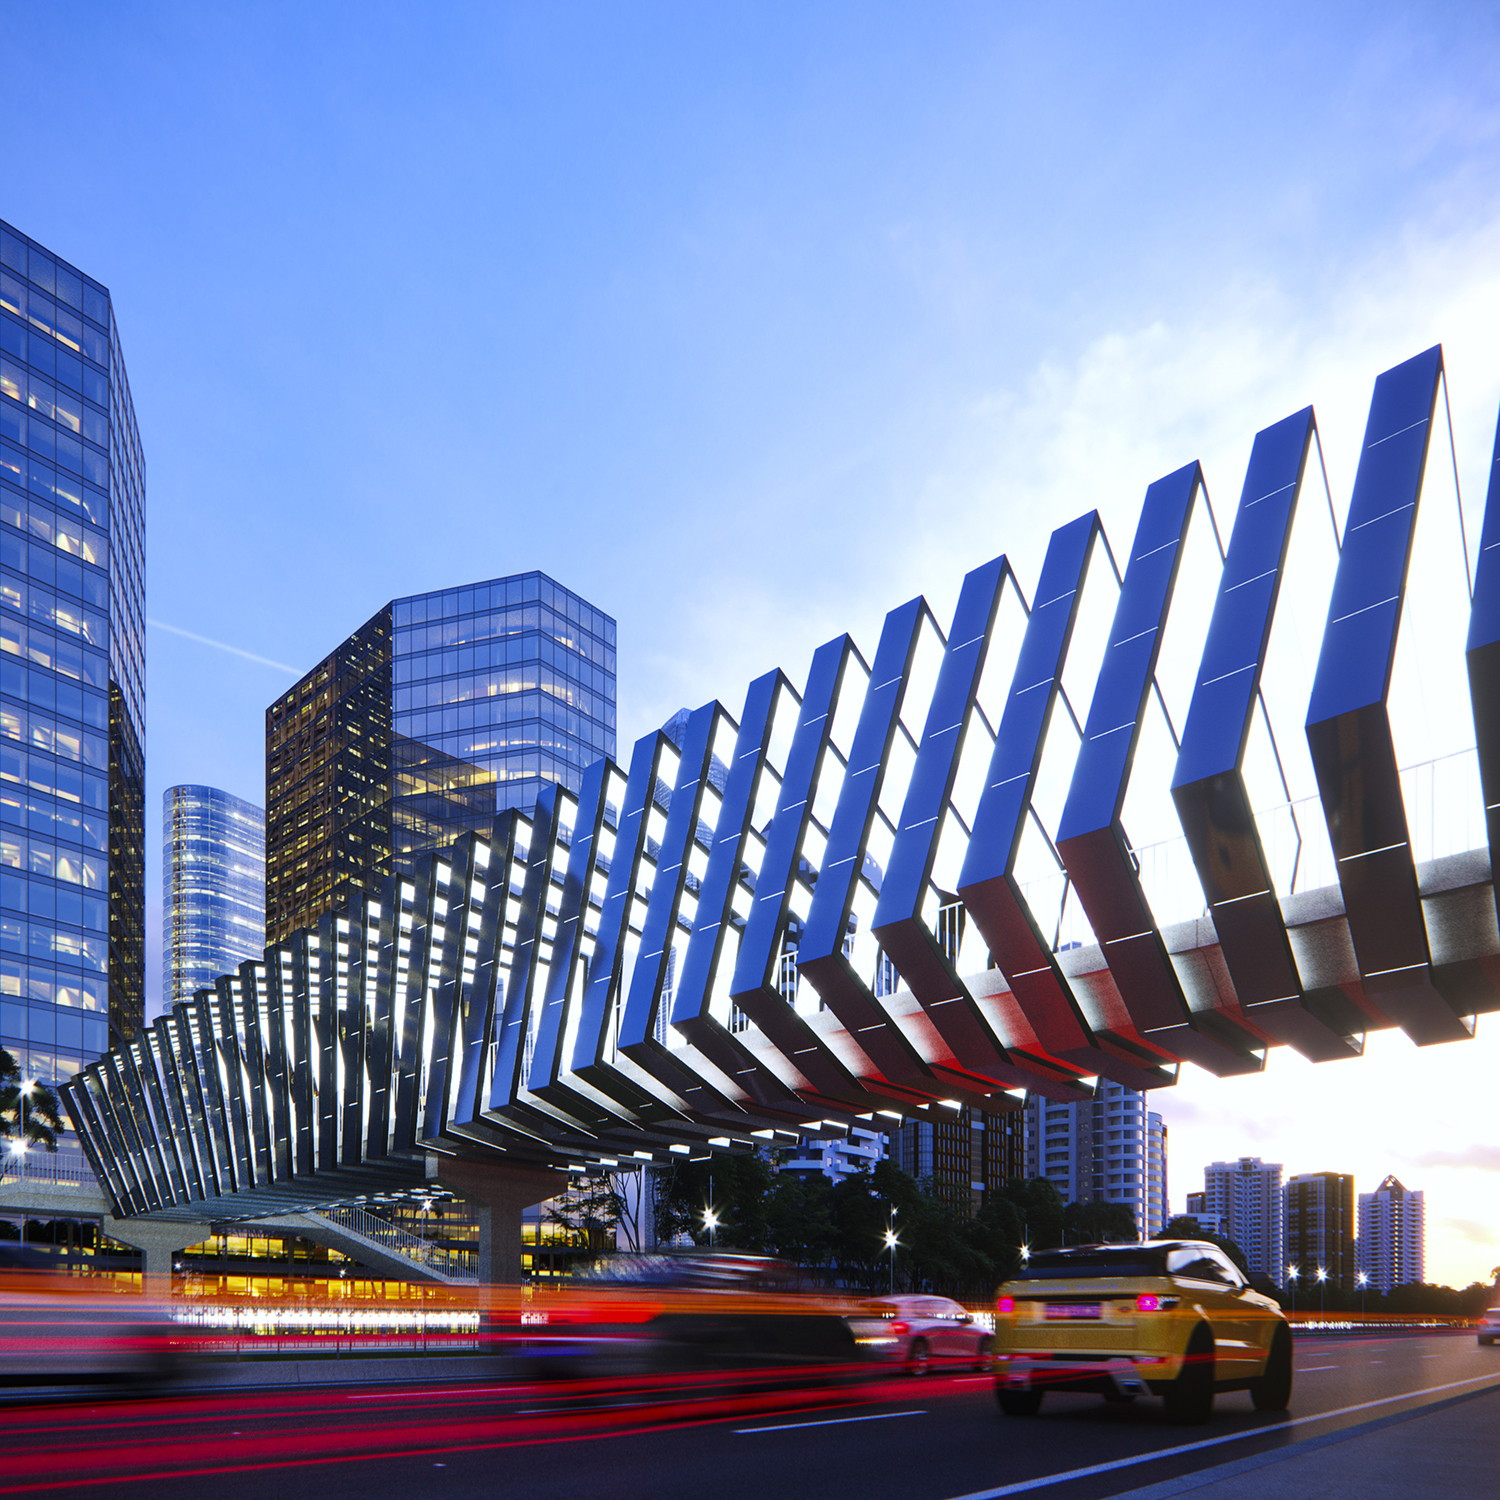 Solar Skywalks Energetic Activation of Footbridges by Peter Kuczia, modern architecture